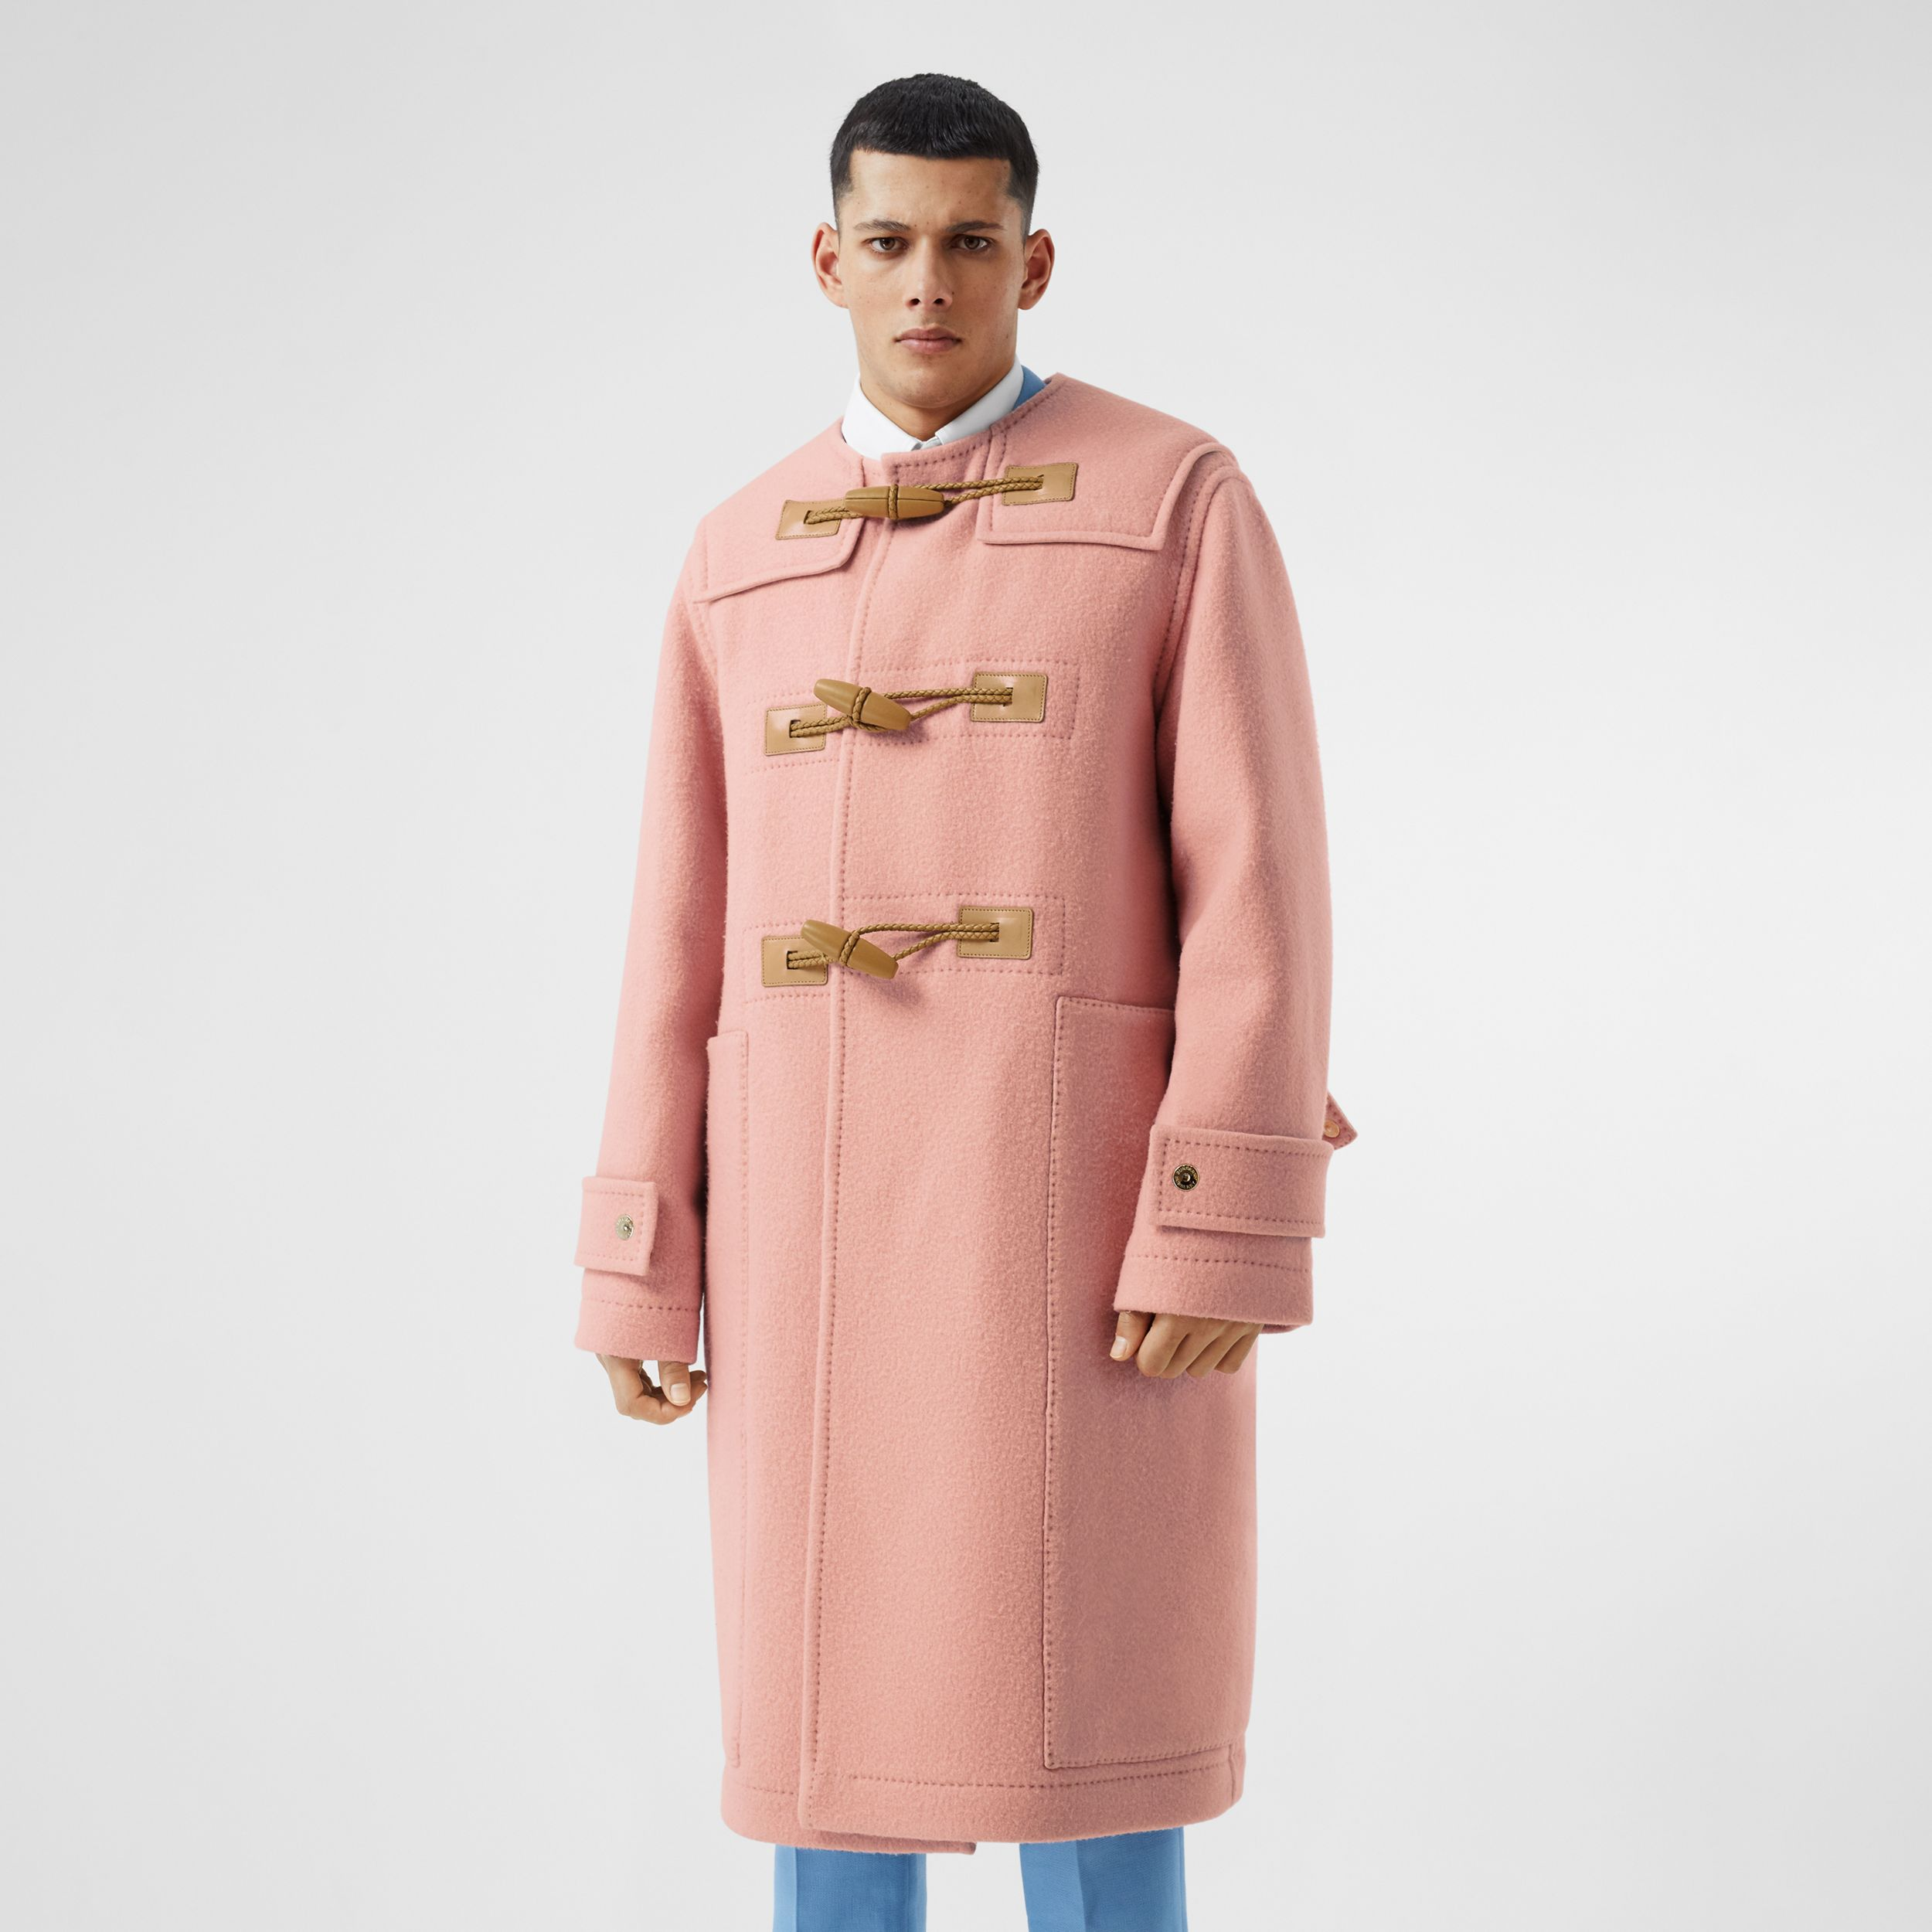 Vintage Check-lined Felted Wool Duffle Coat in Dusty Pink | Burberry United States - 1